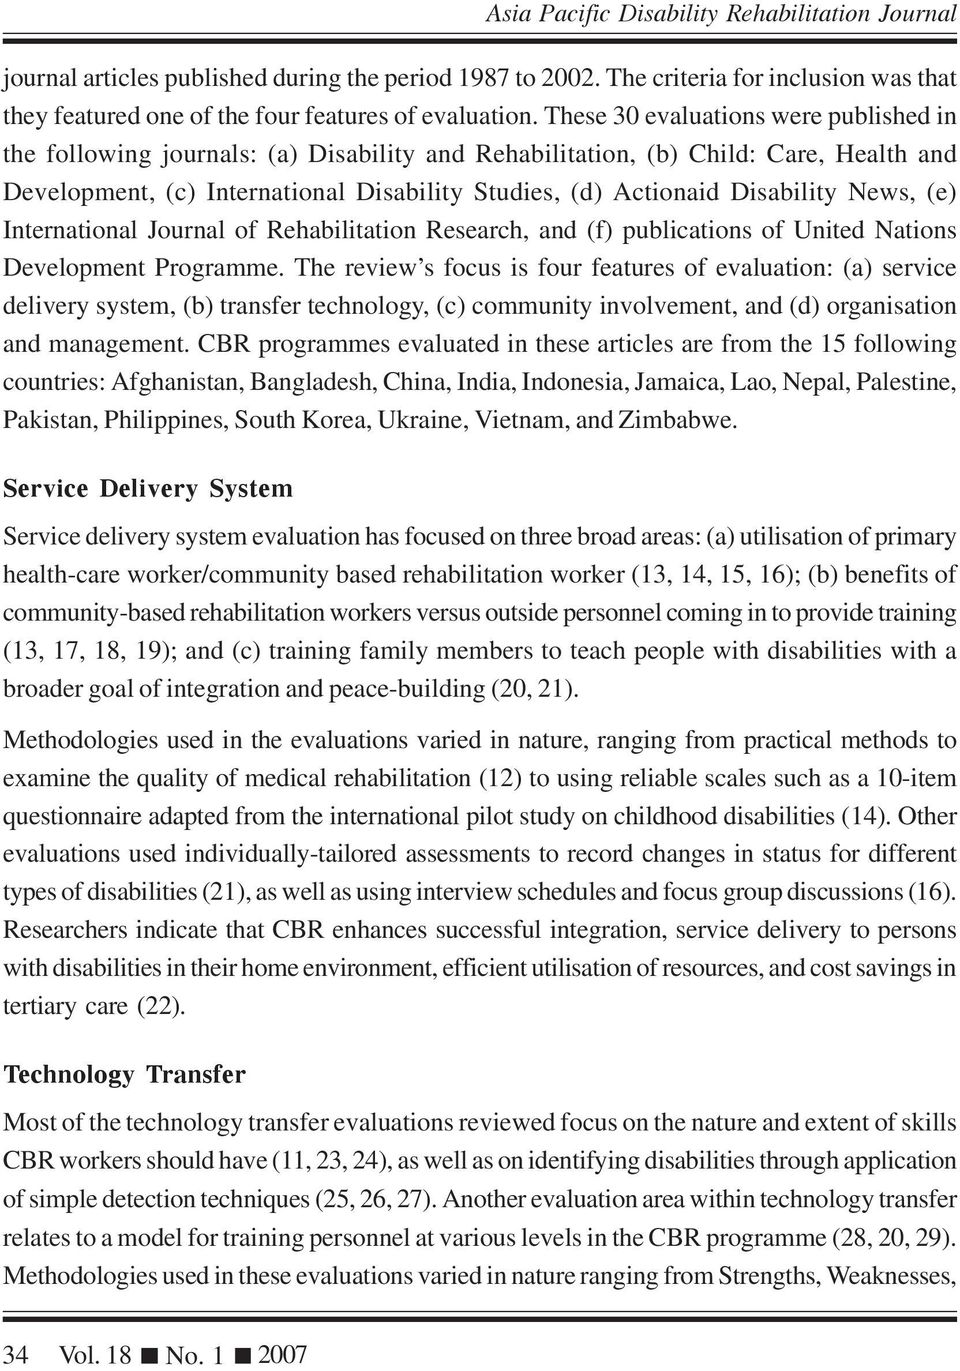 Disability News, (e) International Journal of Rehabilitation Research, and (f) publications of United Nations Development Programme.